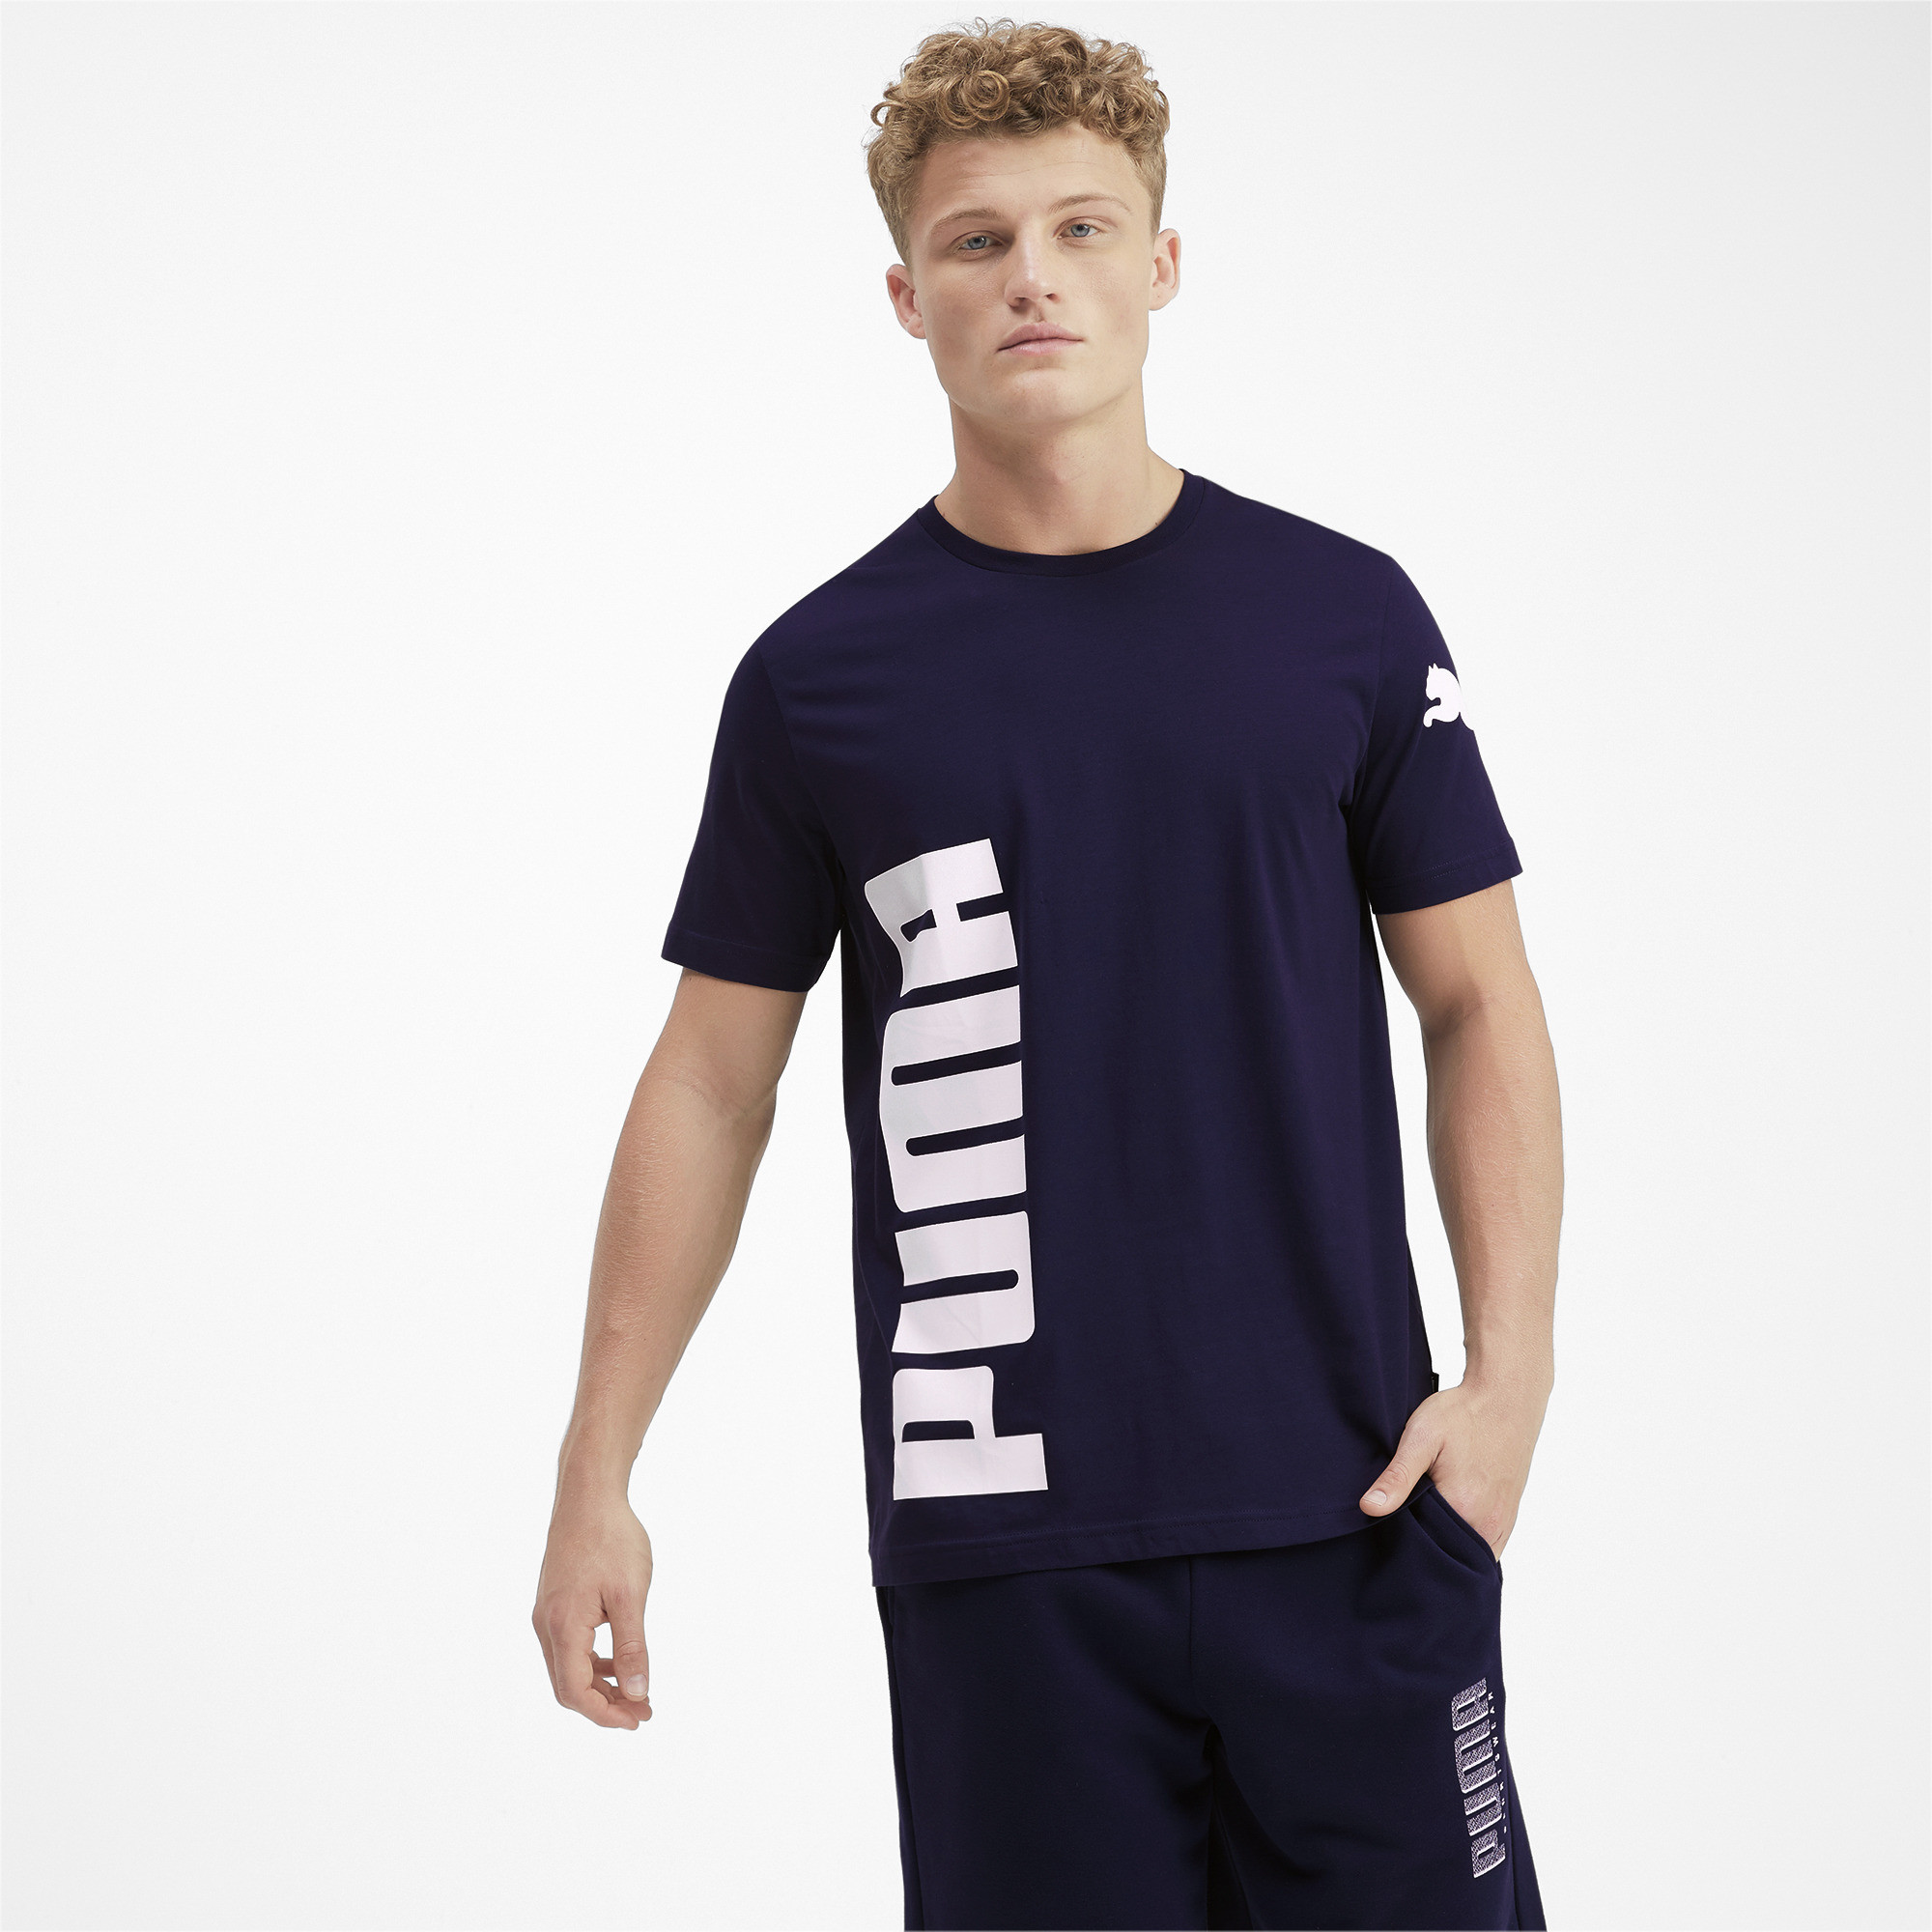 PUMA-Big-Logo-Men-039-s-Tee-Men-Tee-Basics thumbnail 33